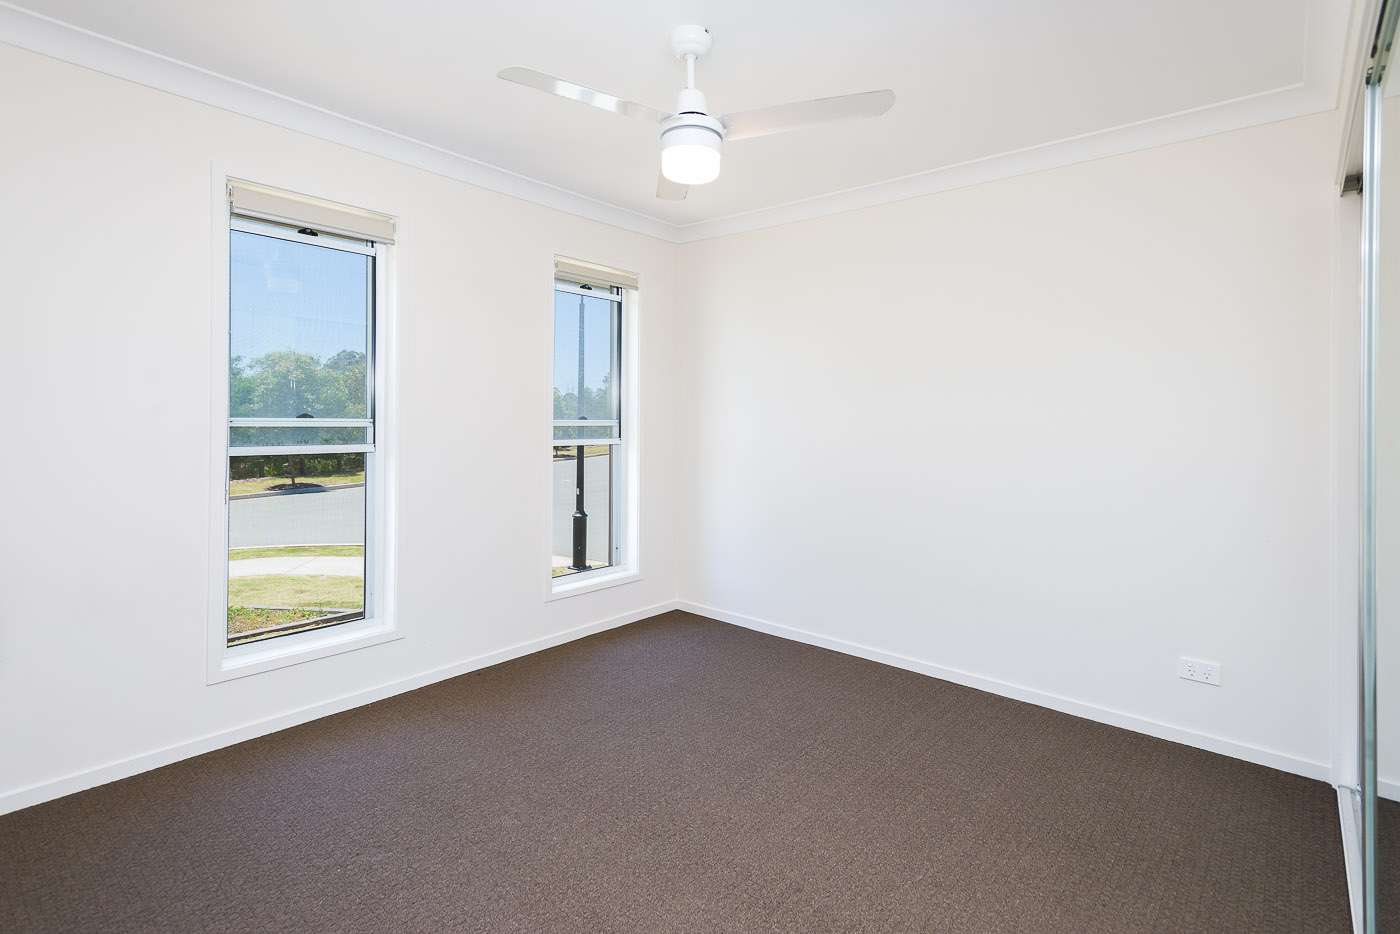 Sixth view of Homely house listing, 7 Corkwood Court, Coomera QLD 4209